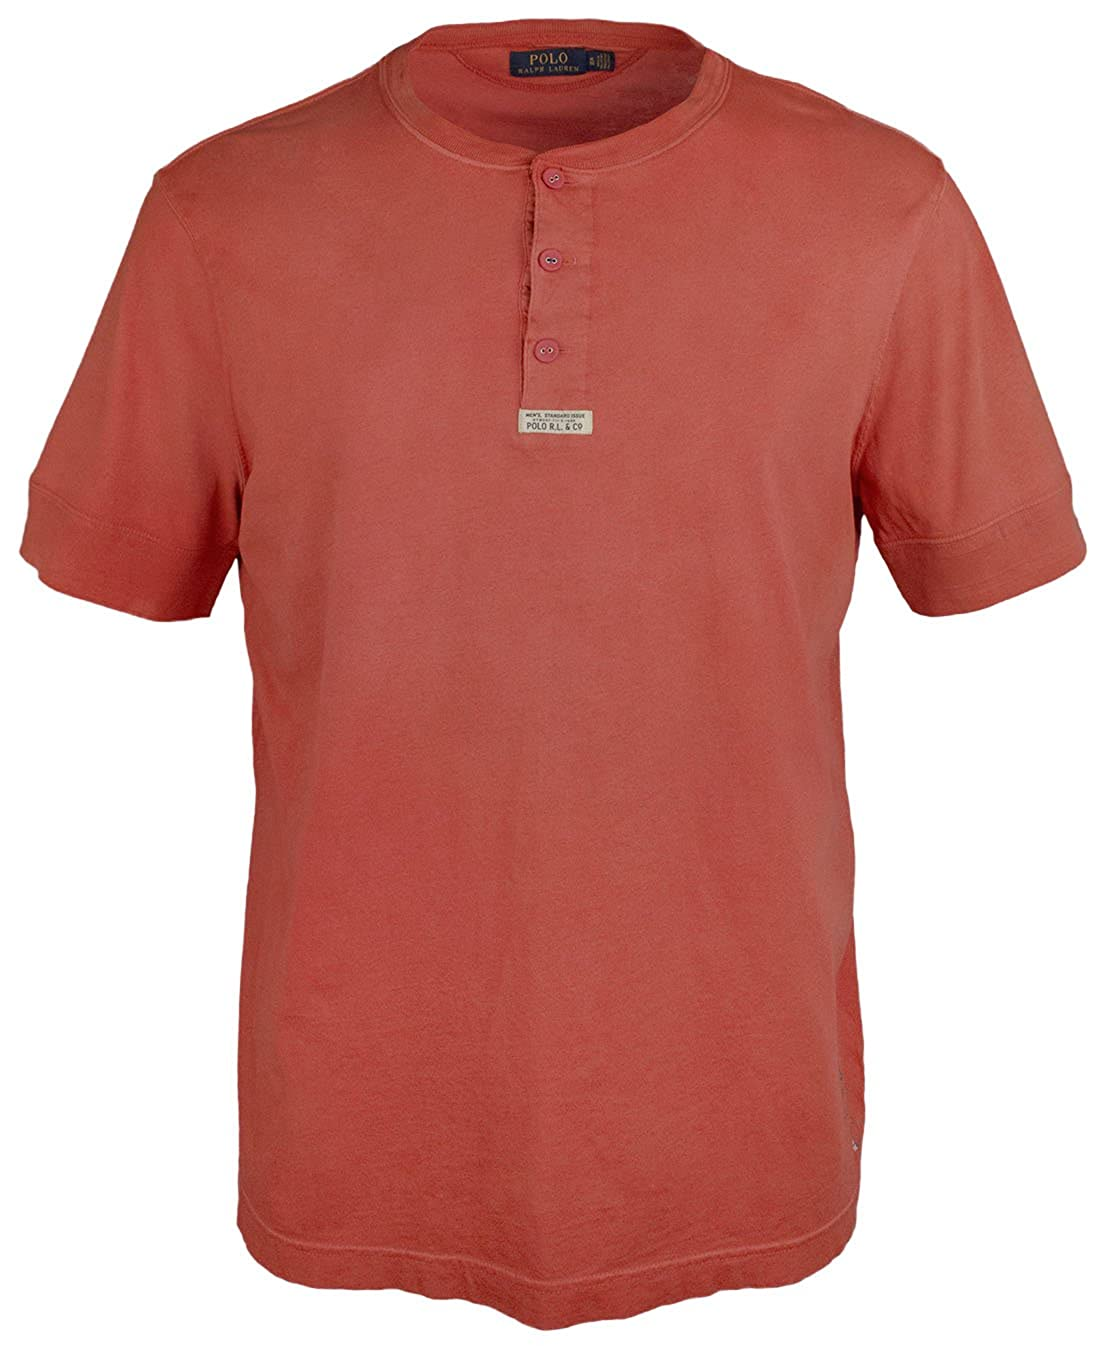 Jersey Cotton Henley Lauren Ralph And Men's Big Tall Polo Shirt NP80knXOZw